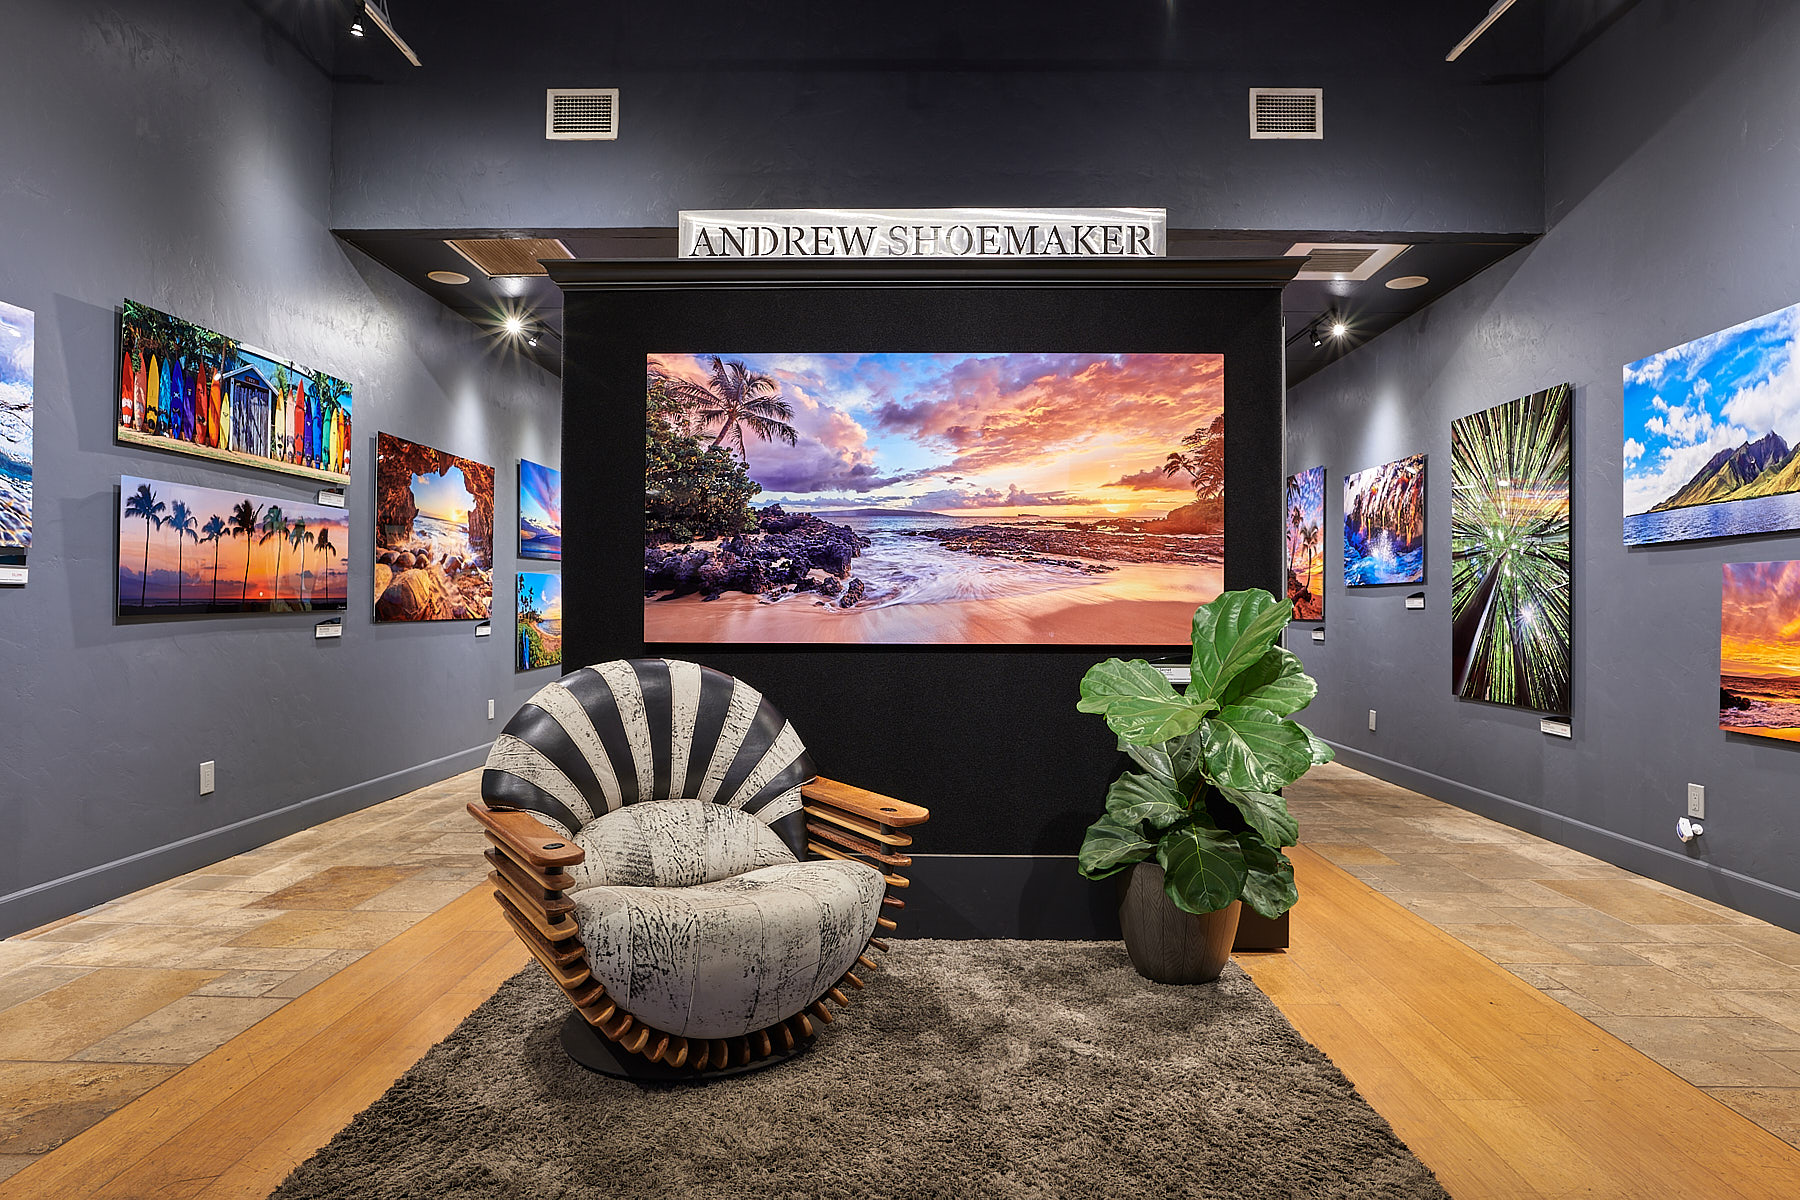 maui art gallery entrance of the Andrew Shoemaker Fine Art Photography Gallery showcasing the luxor chair by pacific green and the photograph Burning Secret